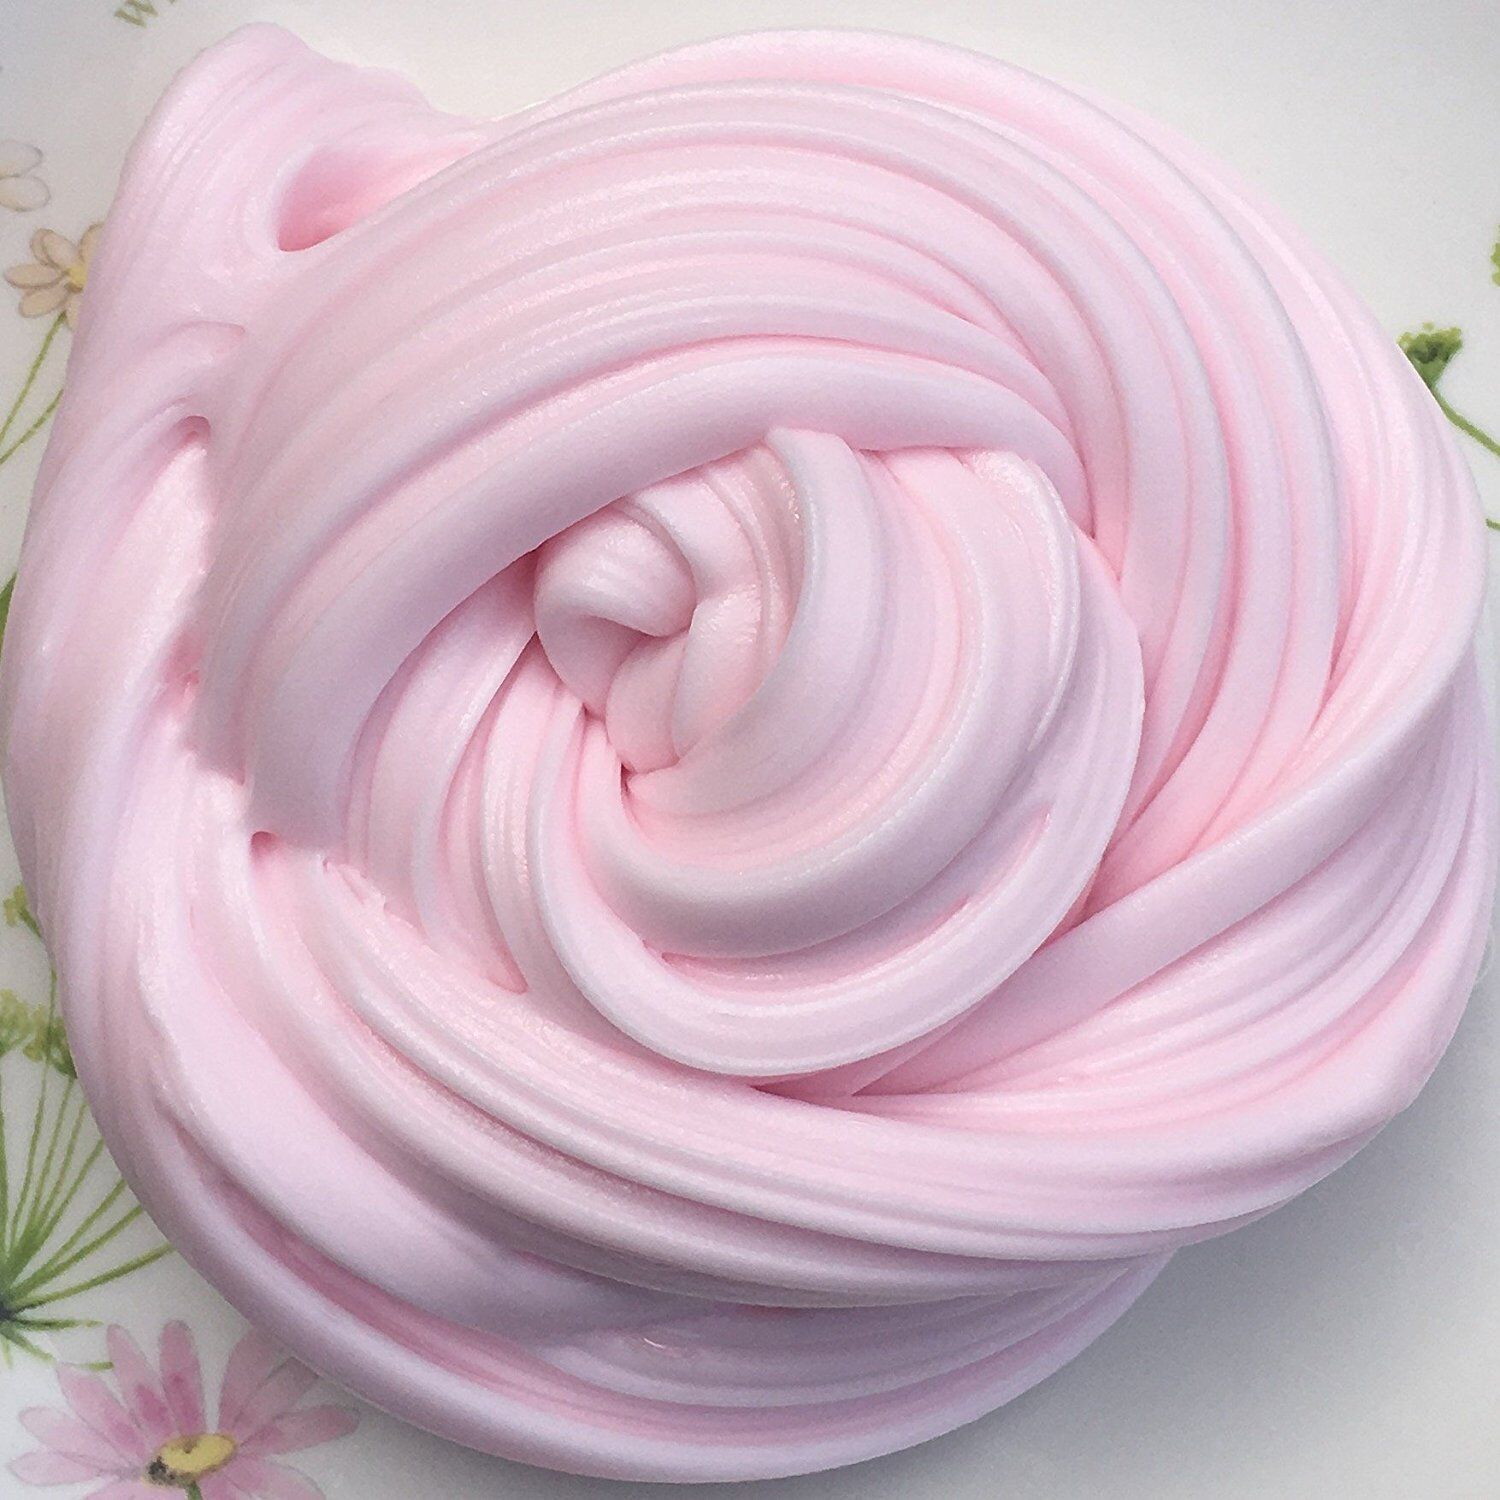 CANDYFLOSS Fluffy Floam Slime Clay Putty Scented 50g Stress Relax NO BORAX Toy